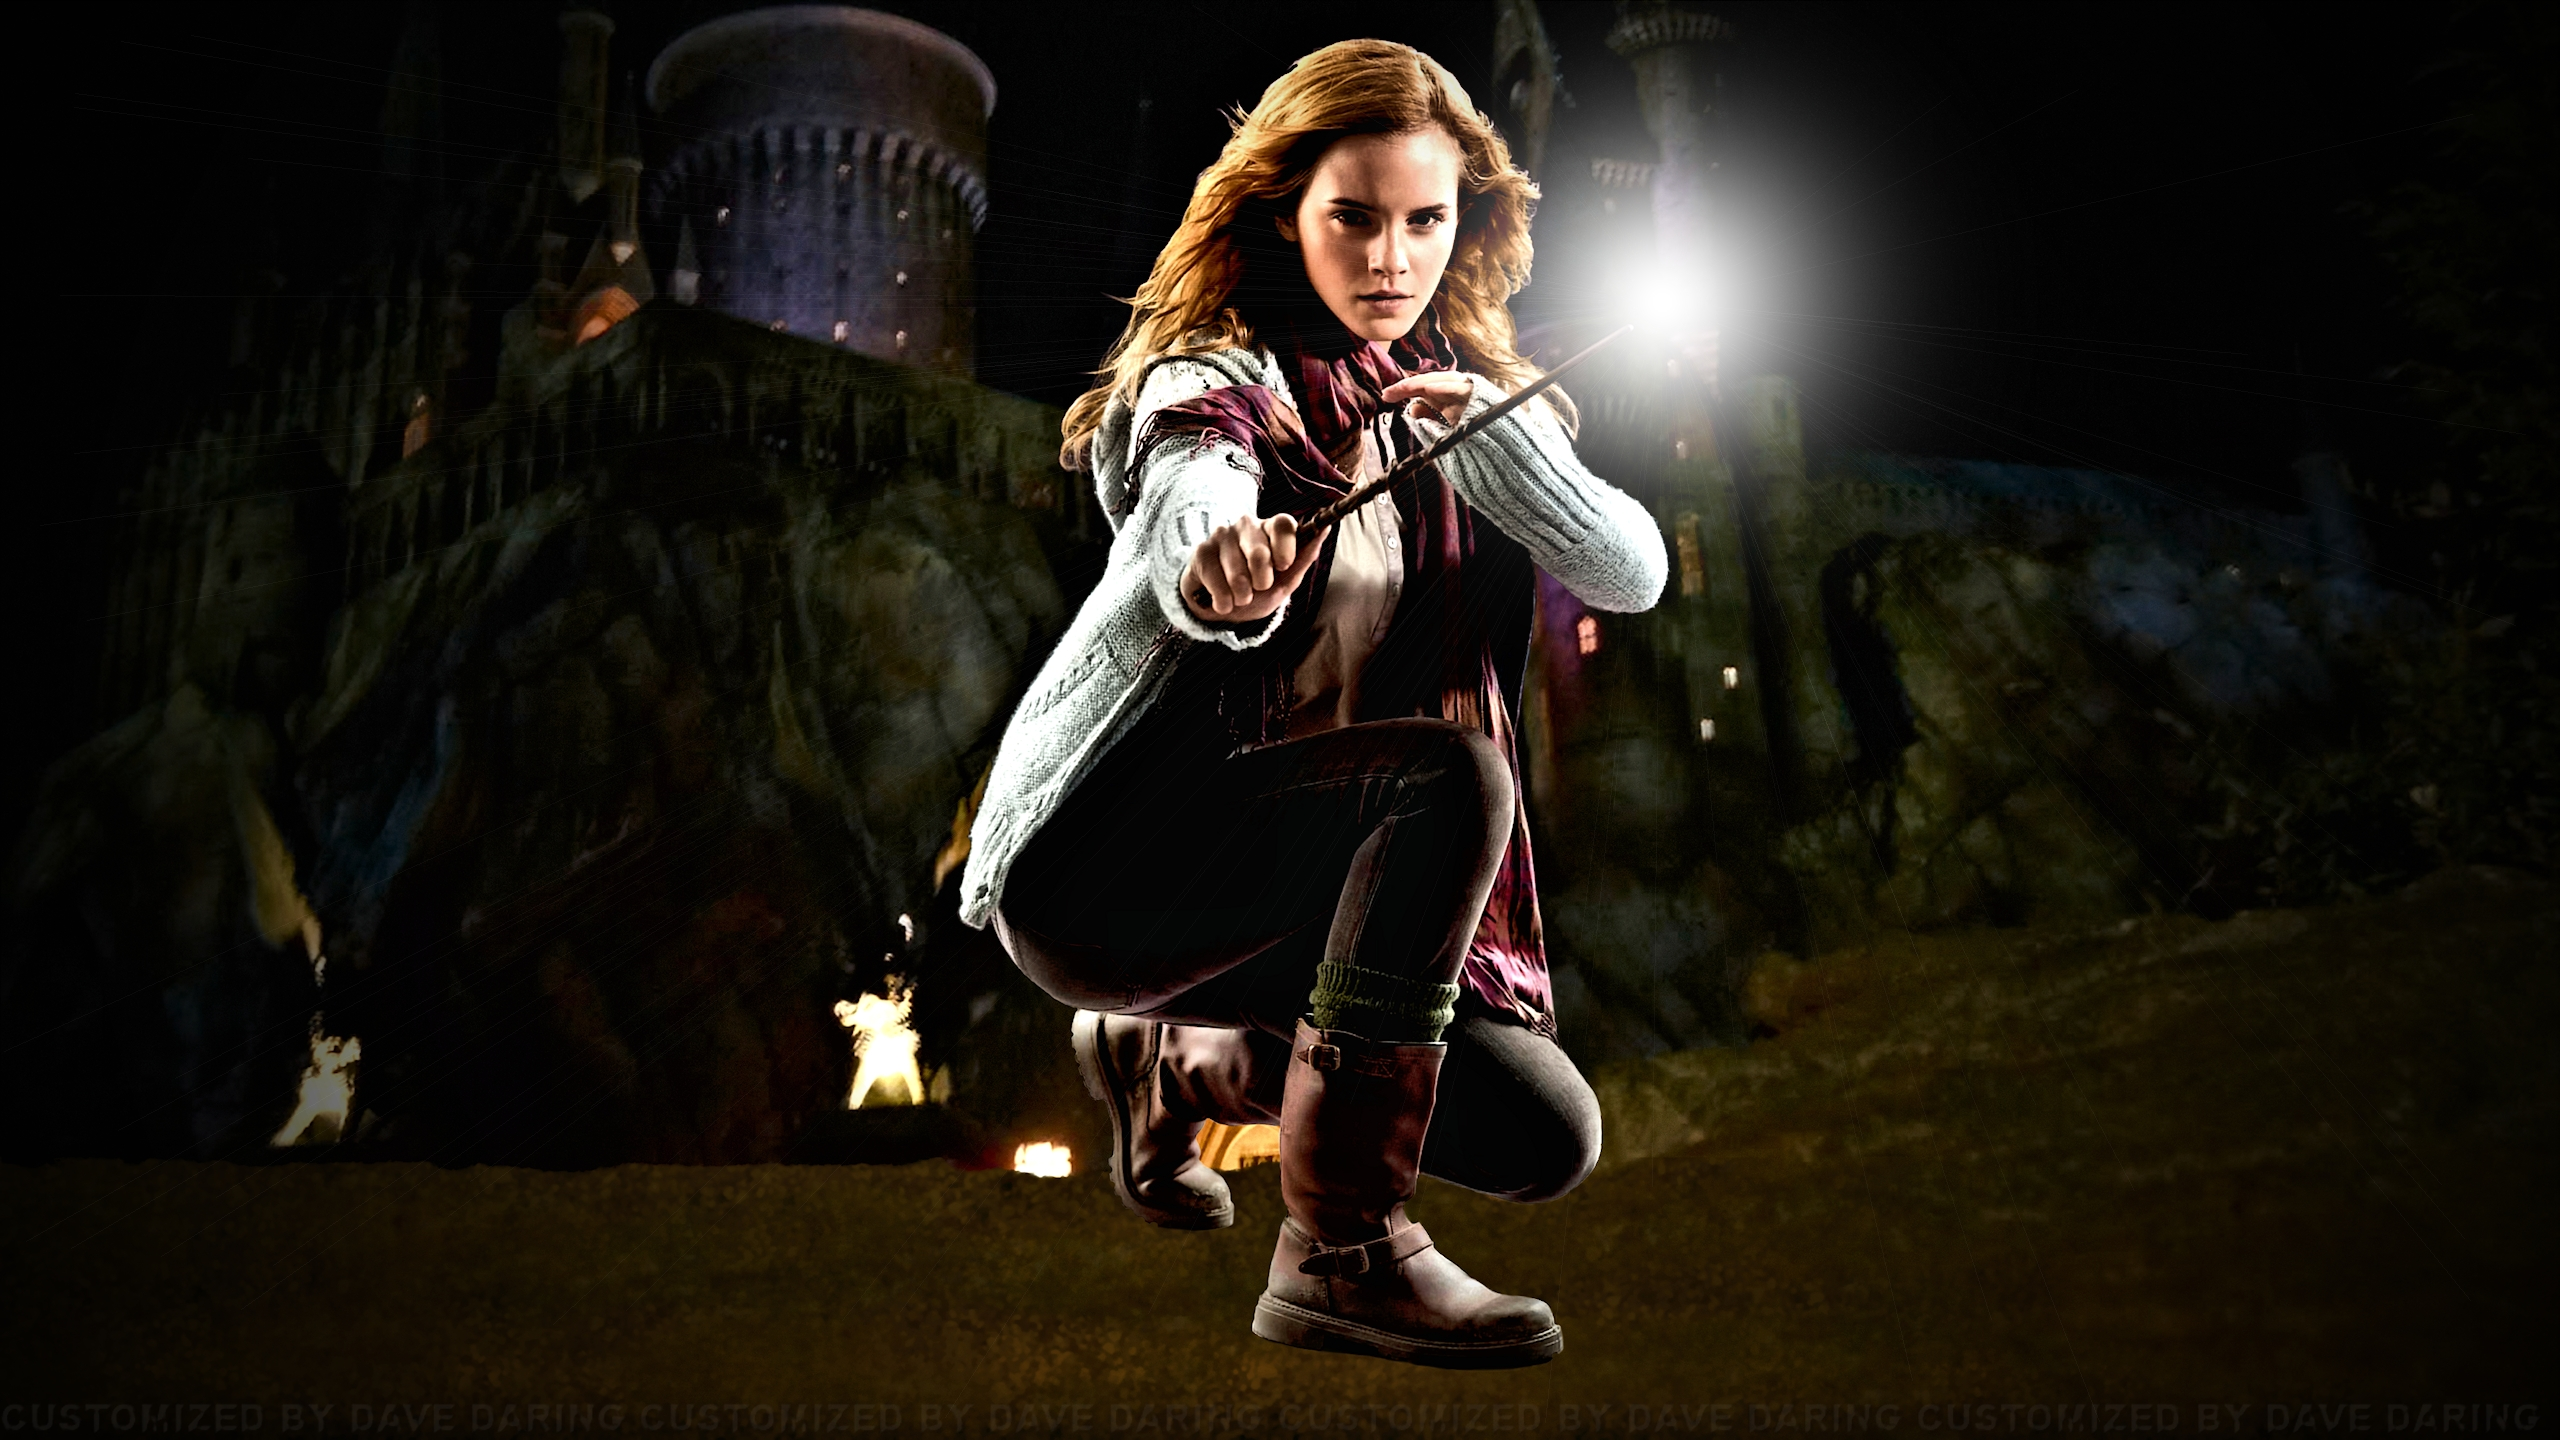 Emma Watson Hogwarts Defender Improved by Dave-Daring